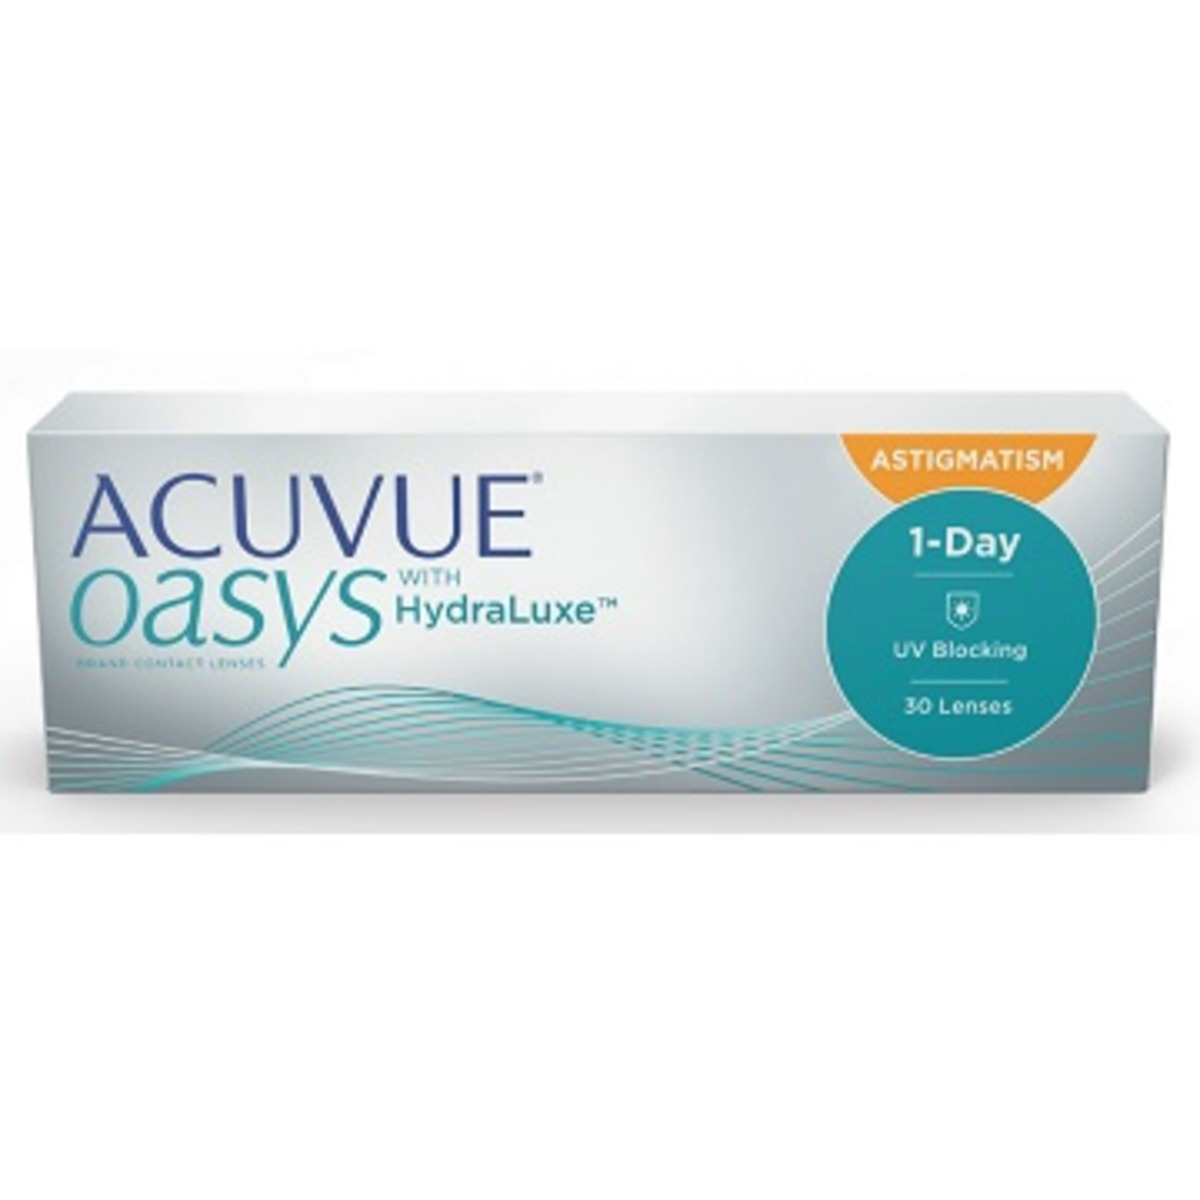 1 Day Acuvue Oasys With HydraLuxe Astigmatism 30L